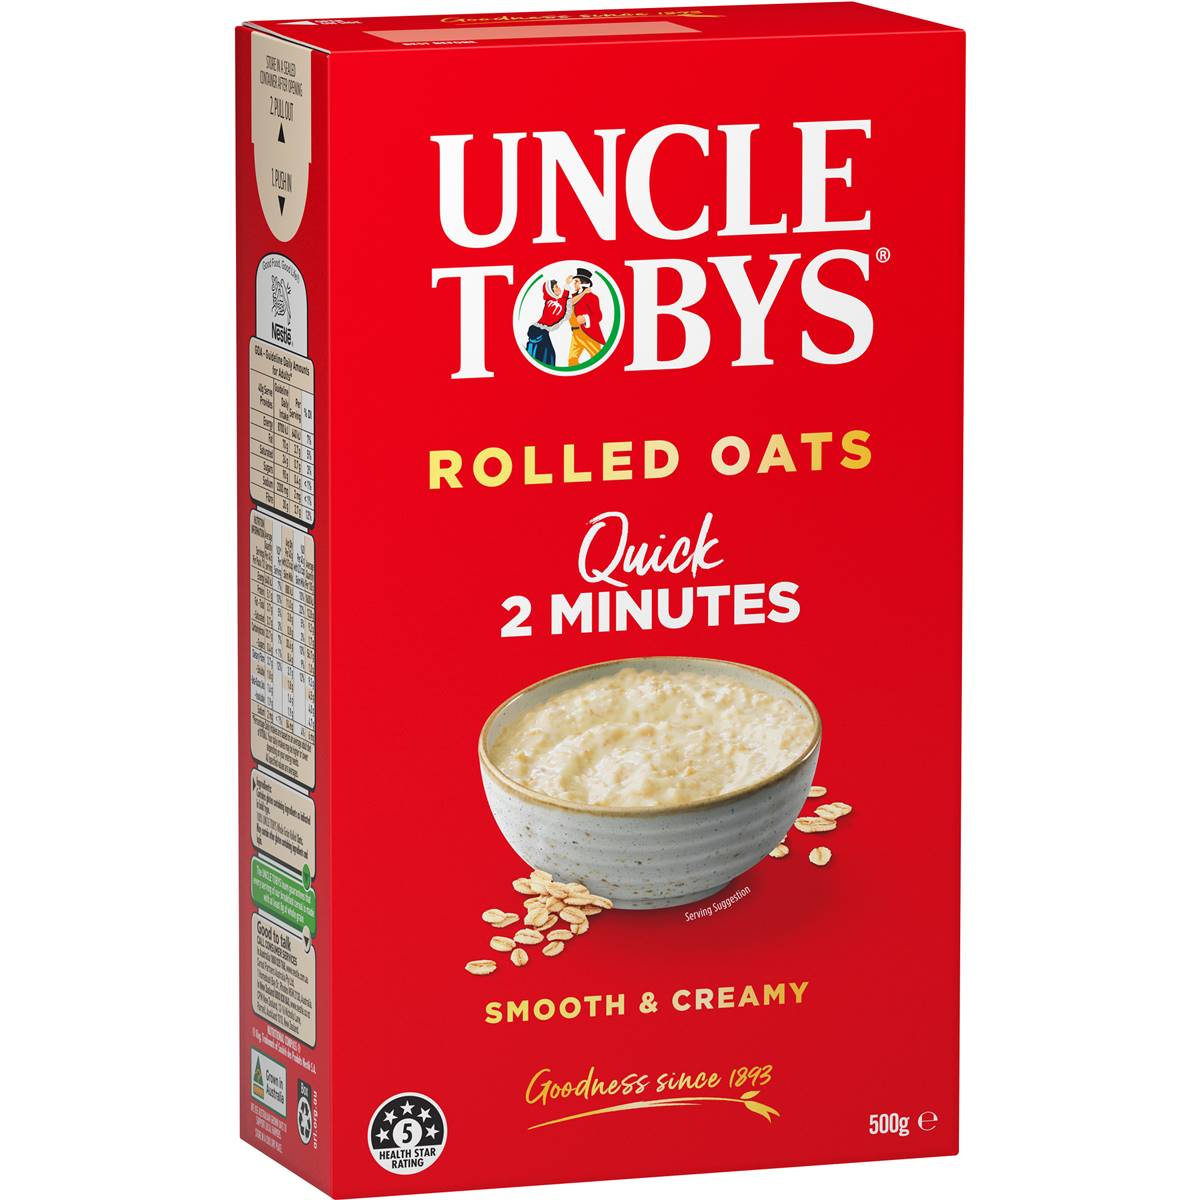 Breakfast Cereal and Oats